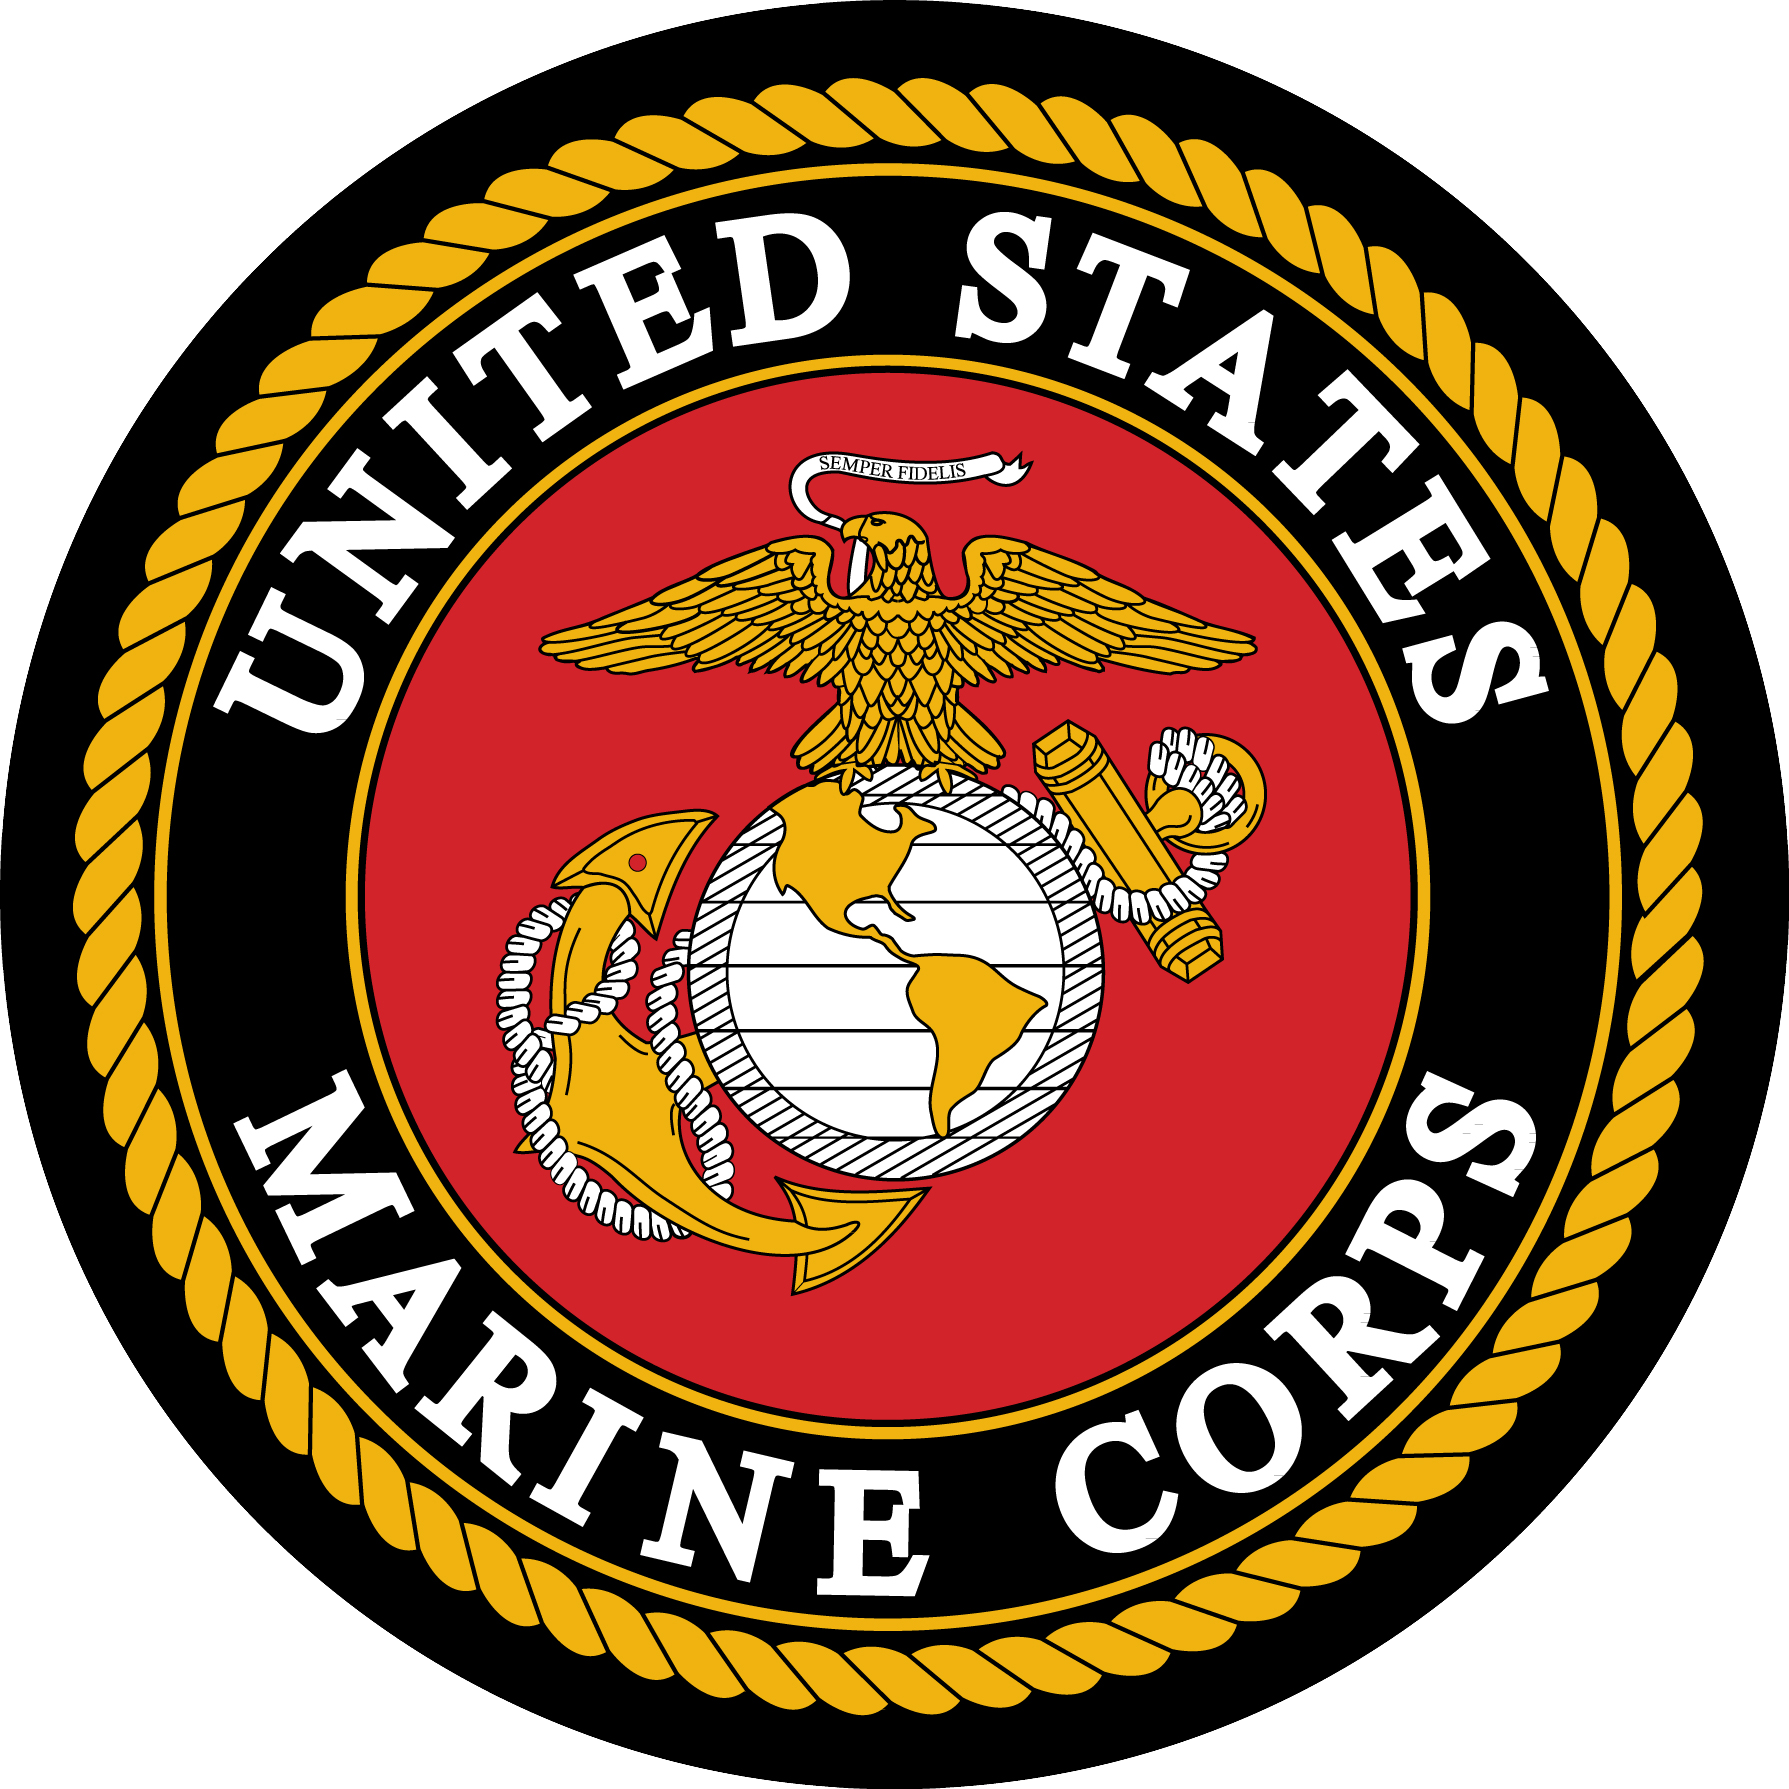 Us marine corps logo. Marines seal png banner transparent stock